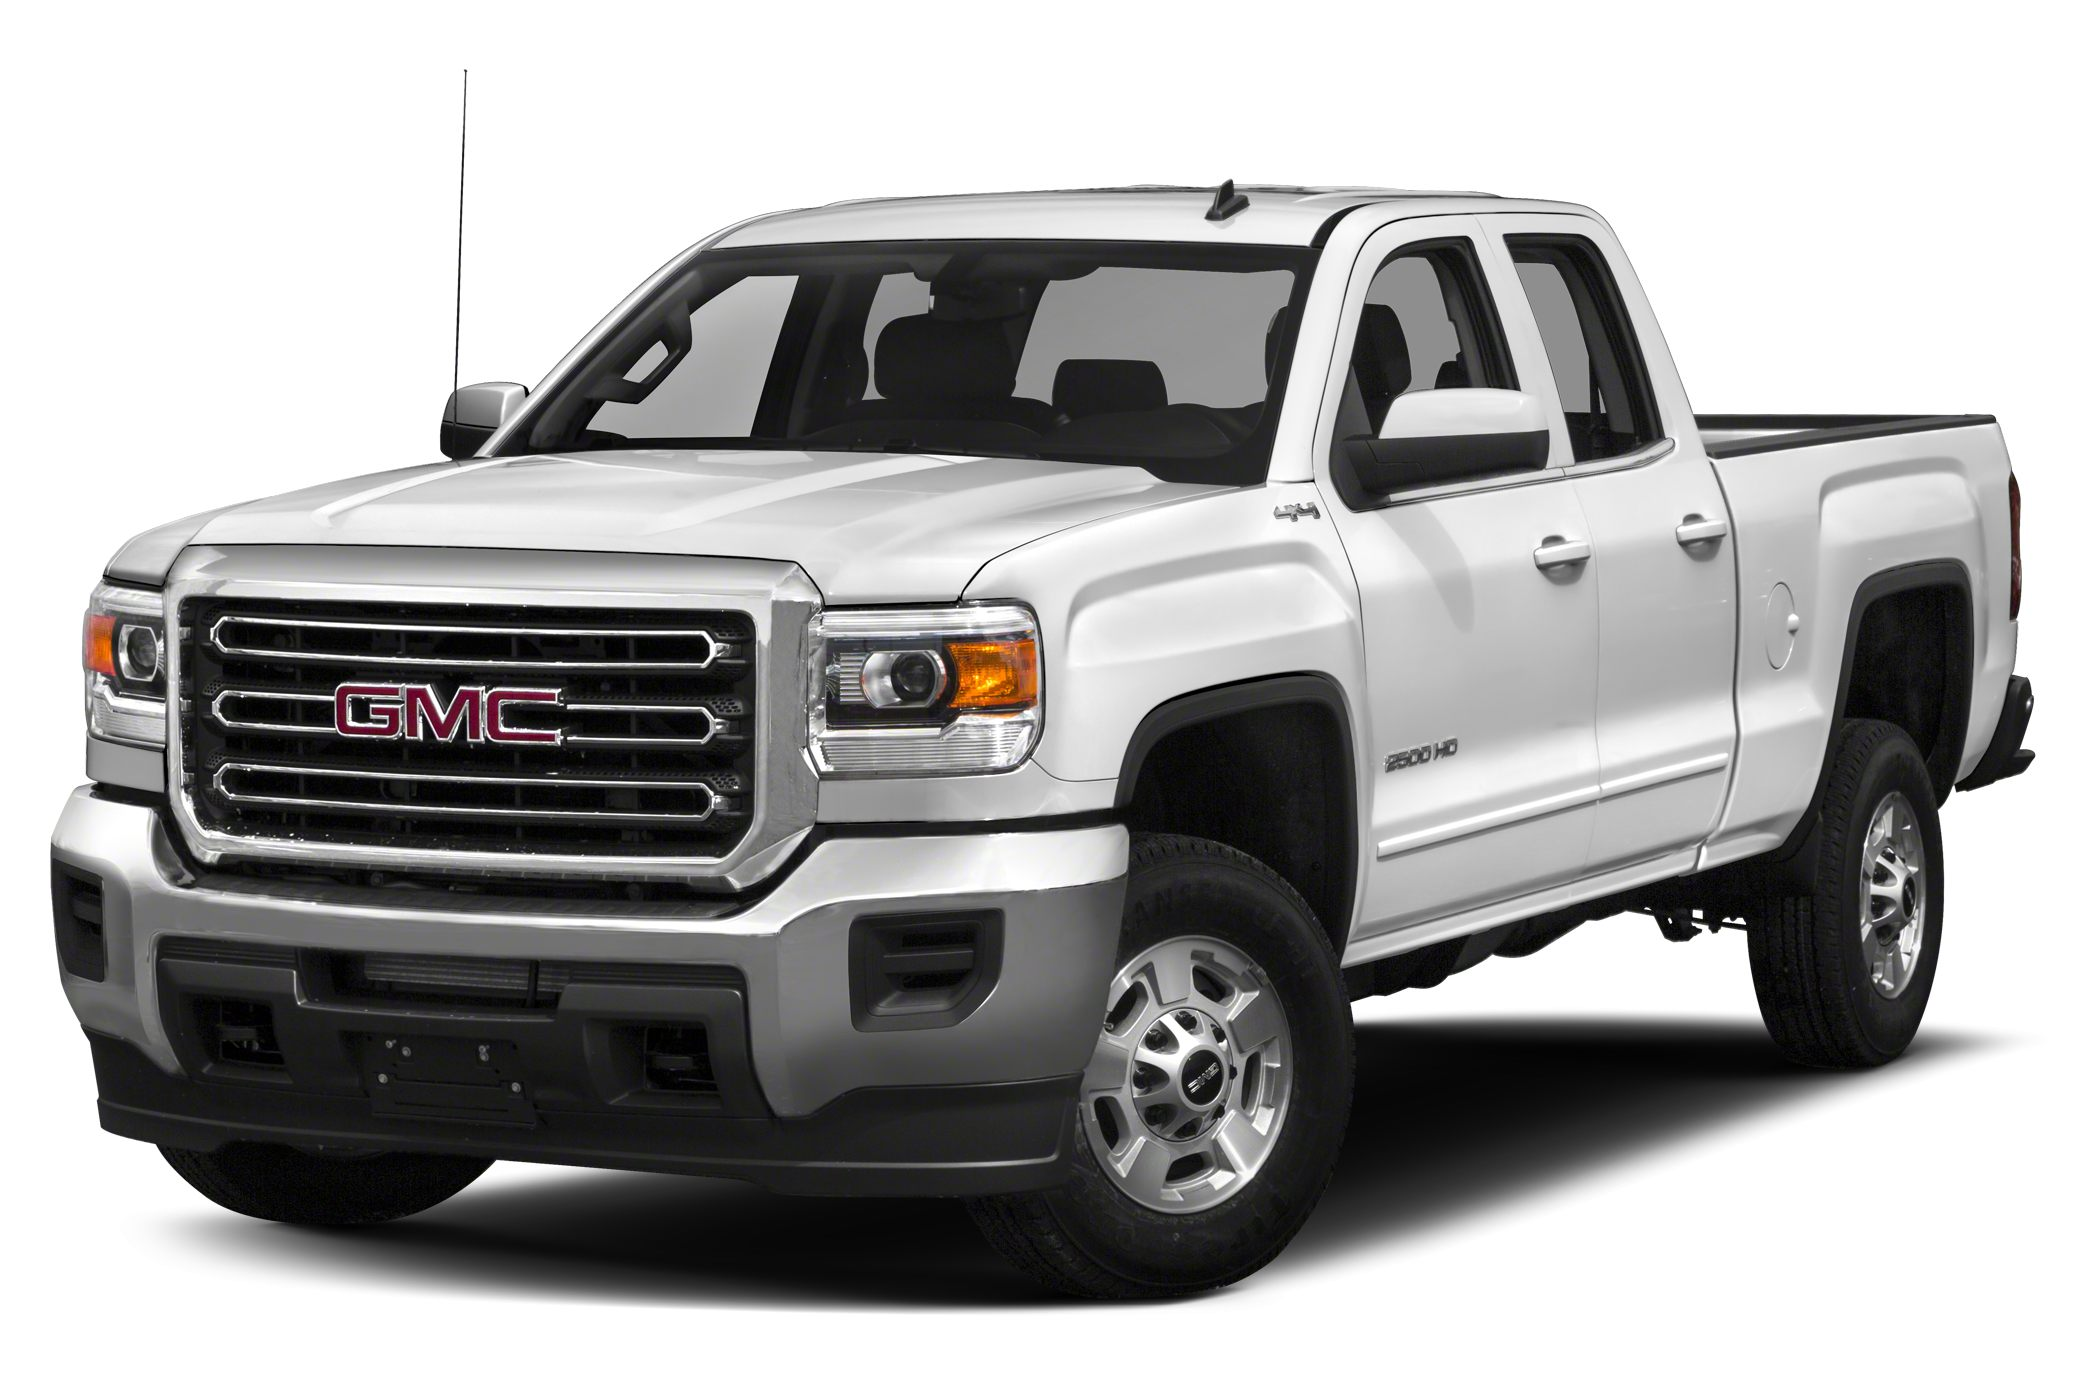 2015 GMC Sierra 2500 Base Regular Cab Pickup for sale in Vernon Rockville for $53,110 with 0 miles.